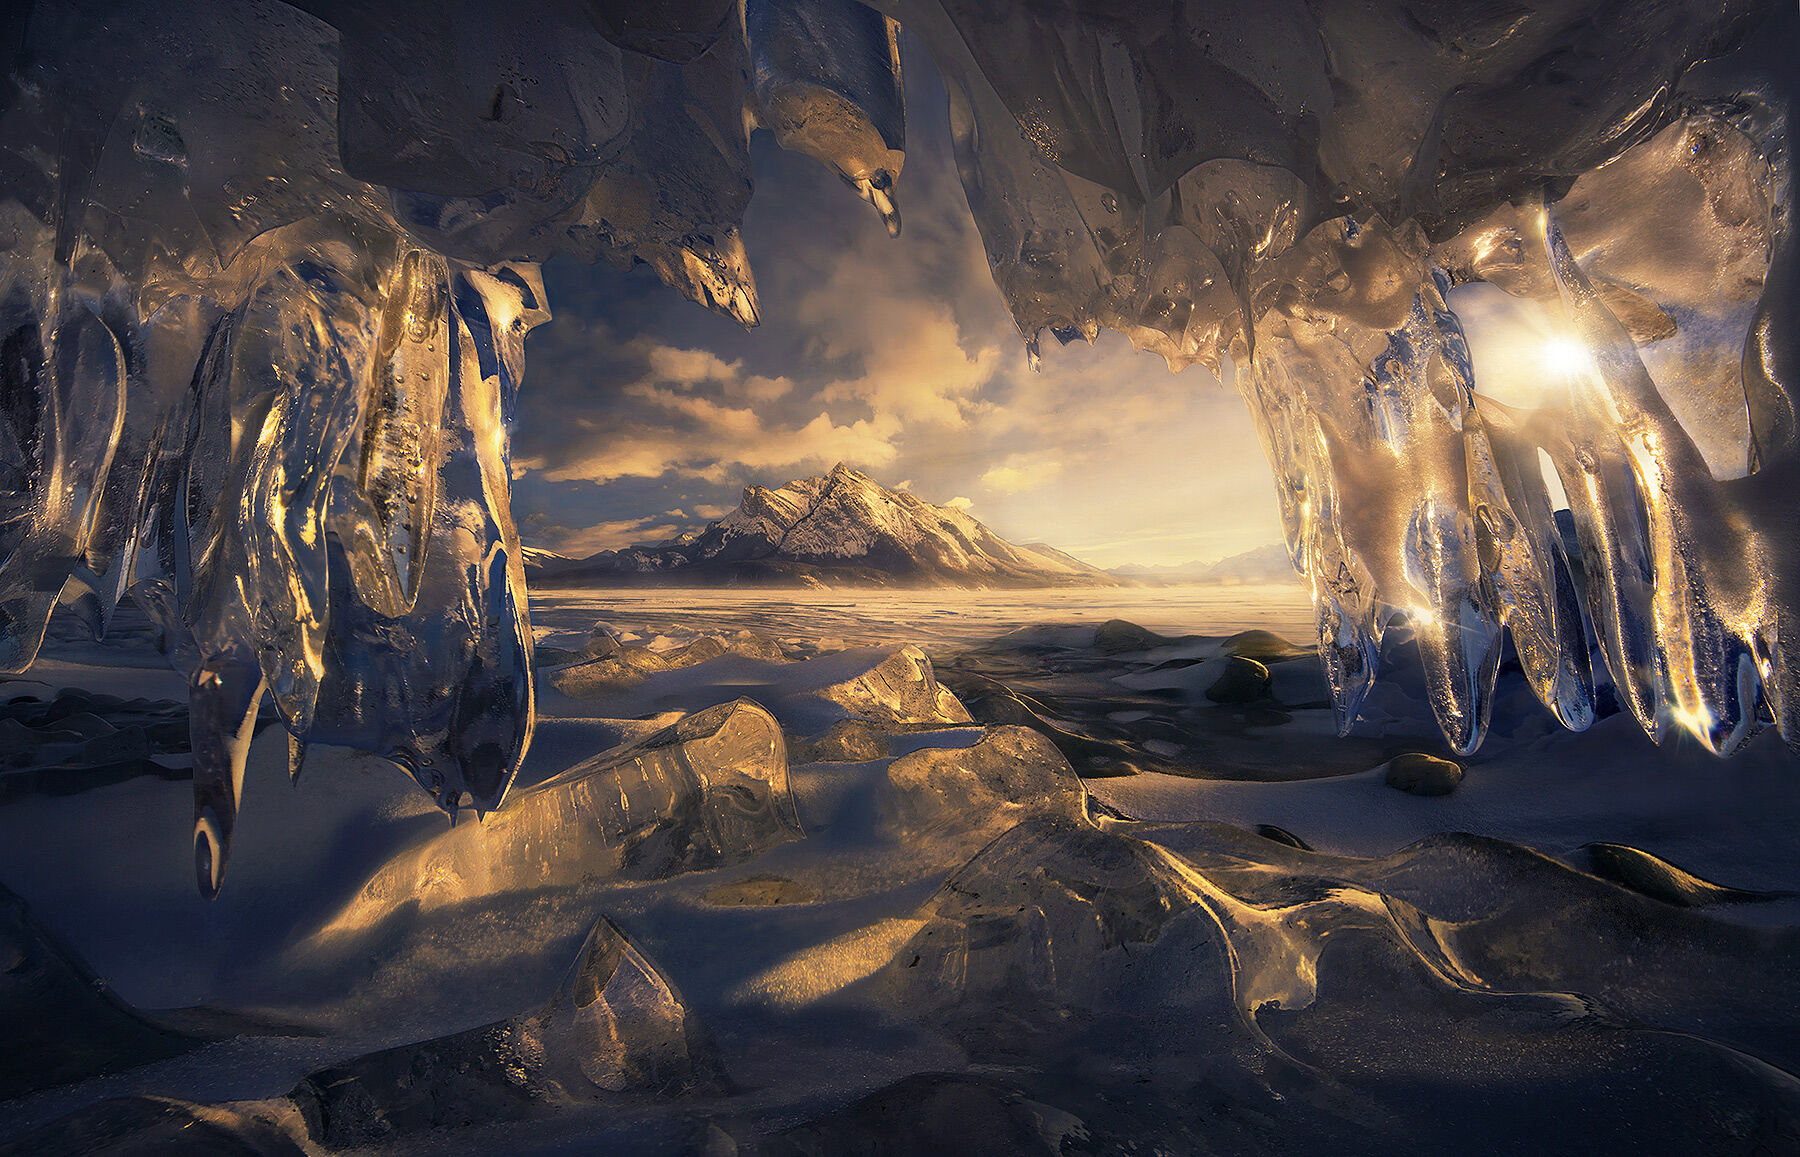 Crystal, ice, icicle, canadian rockies, rockies, canada, alberta, marc adamus, snow, winter, mountains, ice cave, abraham, photo